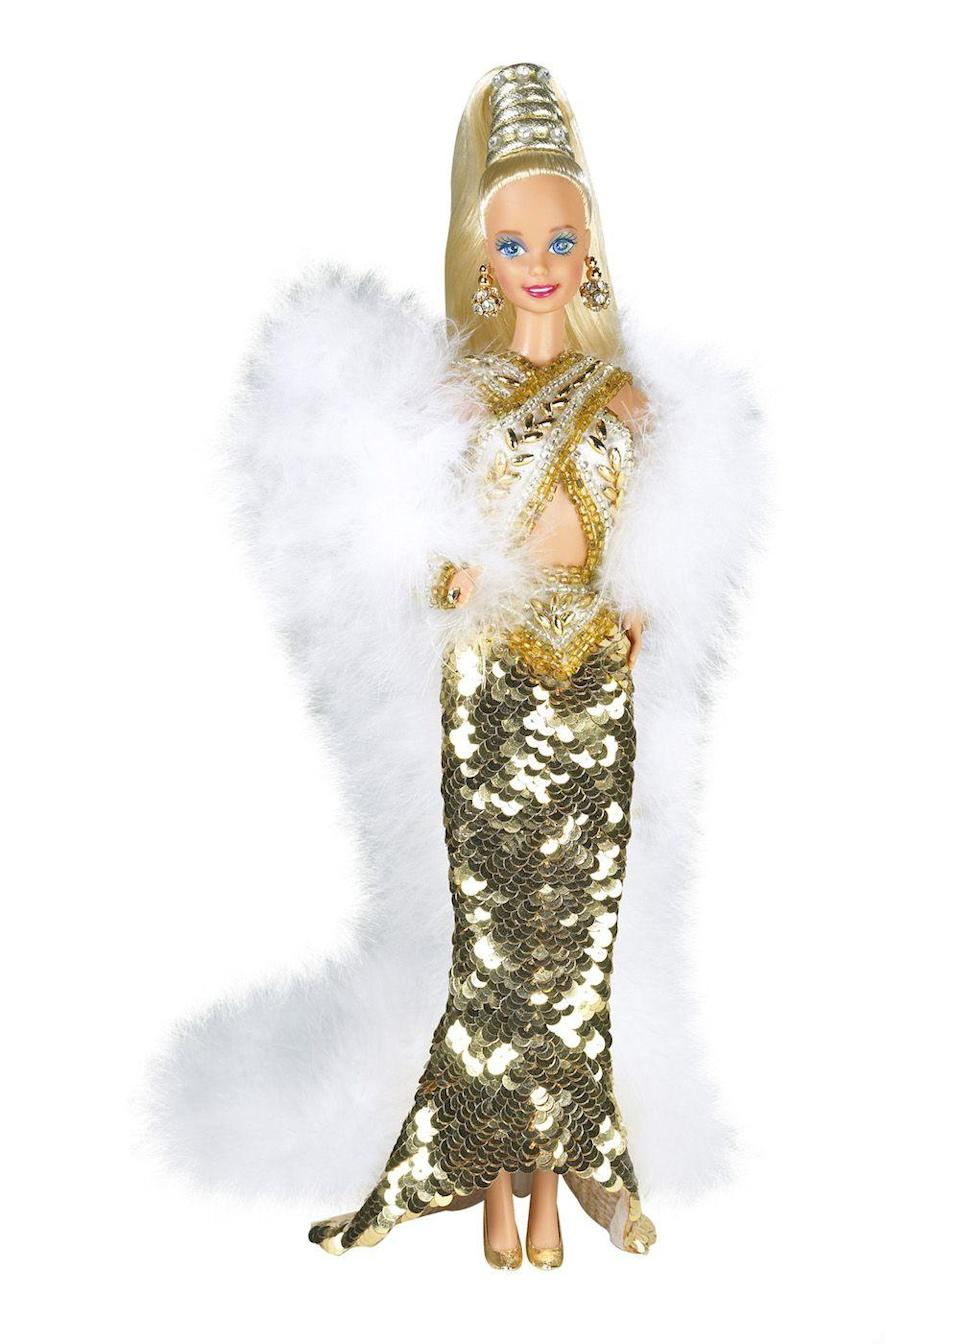 "<p>The '90s brings new designer collaborations to the Barbie world, like this Bob Mackie creation. </p><p><a href=""http://www.goodhousekeeping.com/home/g3758/90s-things-every-girl-bedroom/"" rel=""nofollow noopener"" target=""_blank"" data-ylk=""slk:The 15 things in every '90s room »"" class=""link rapid-noclick-resp""><em>The 15 things in every '90s room »</em></a></p>"